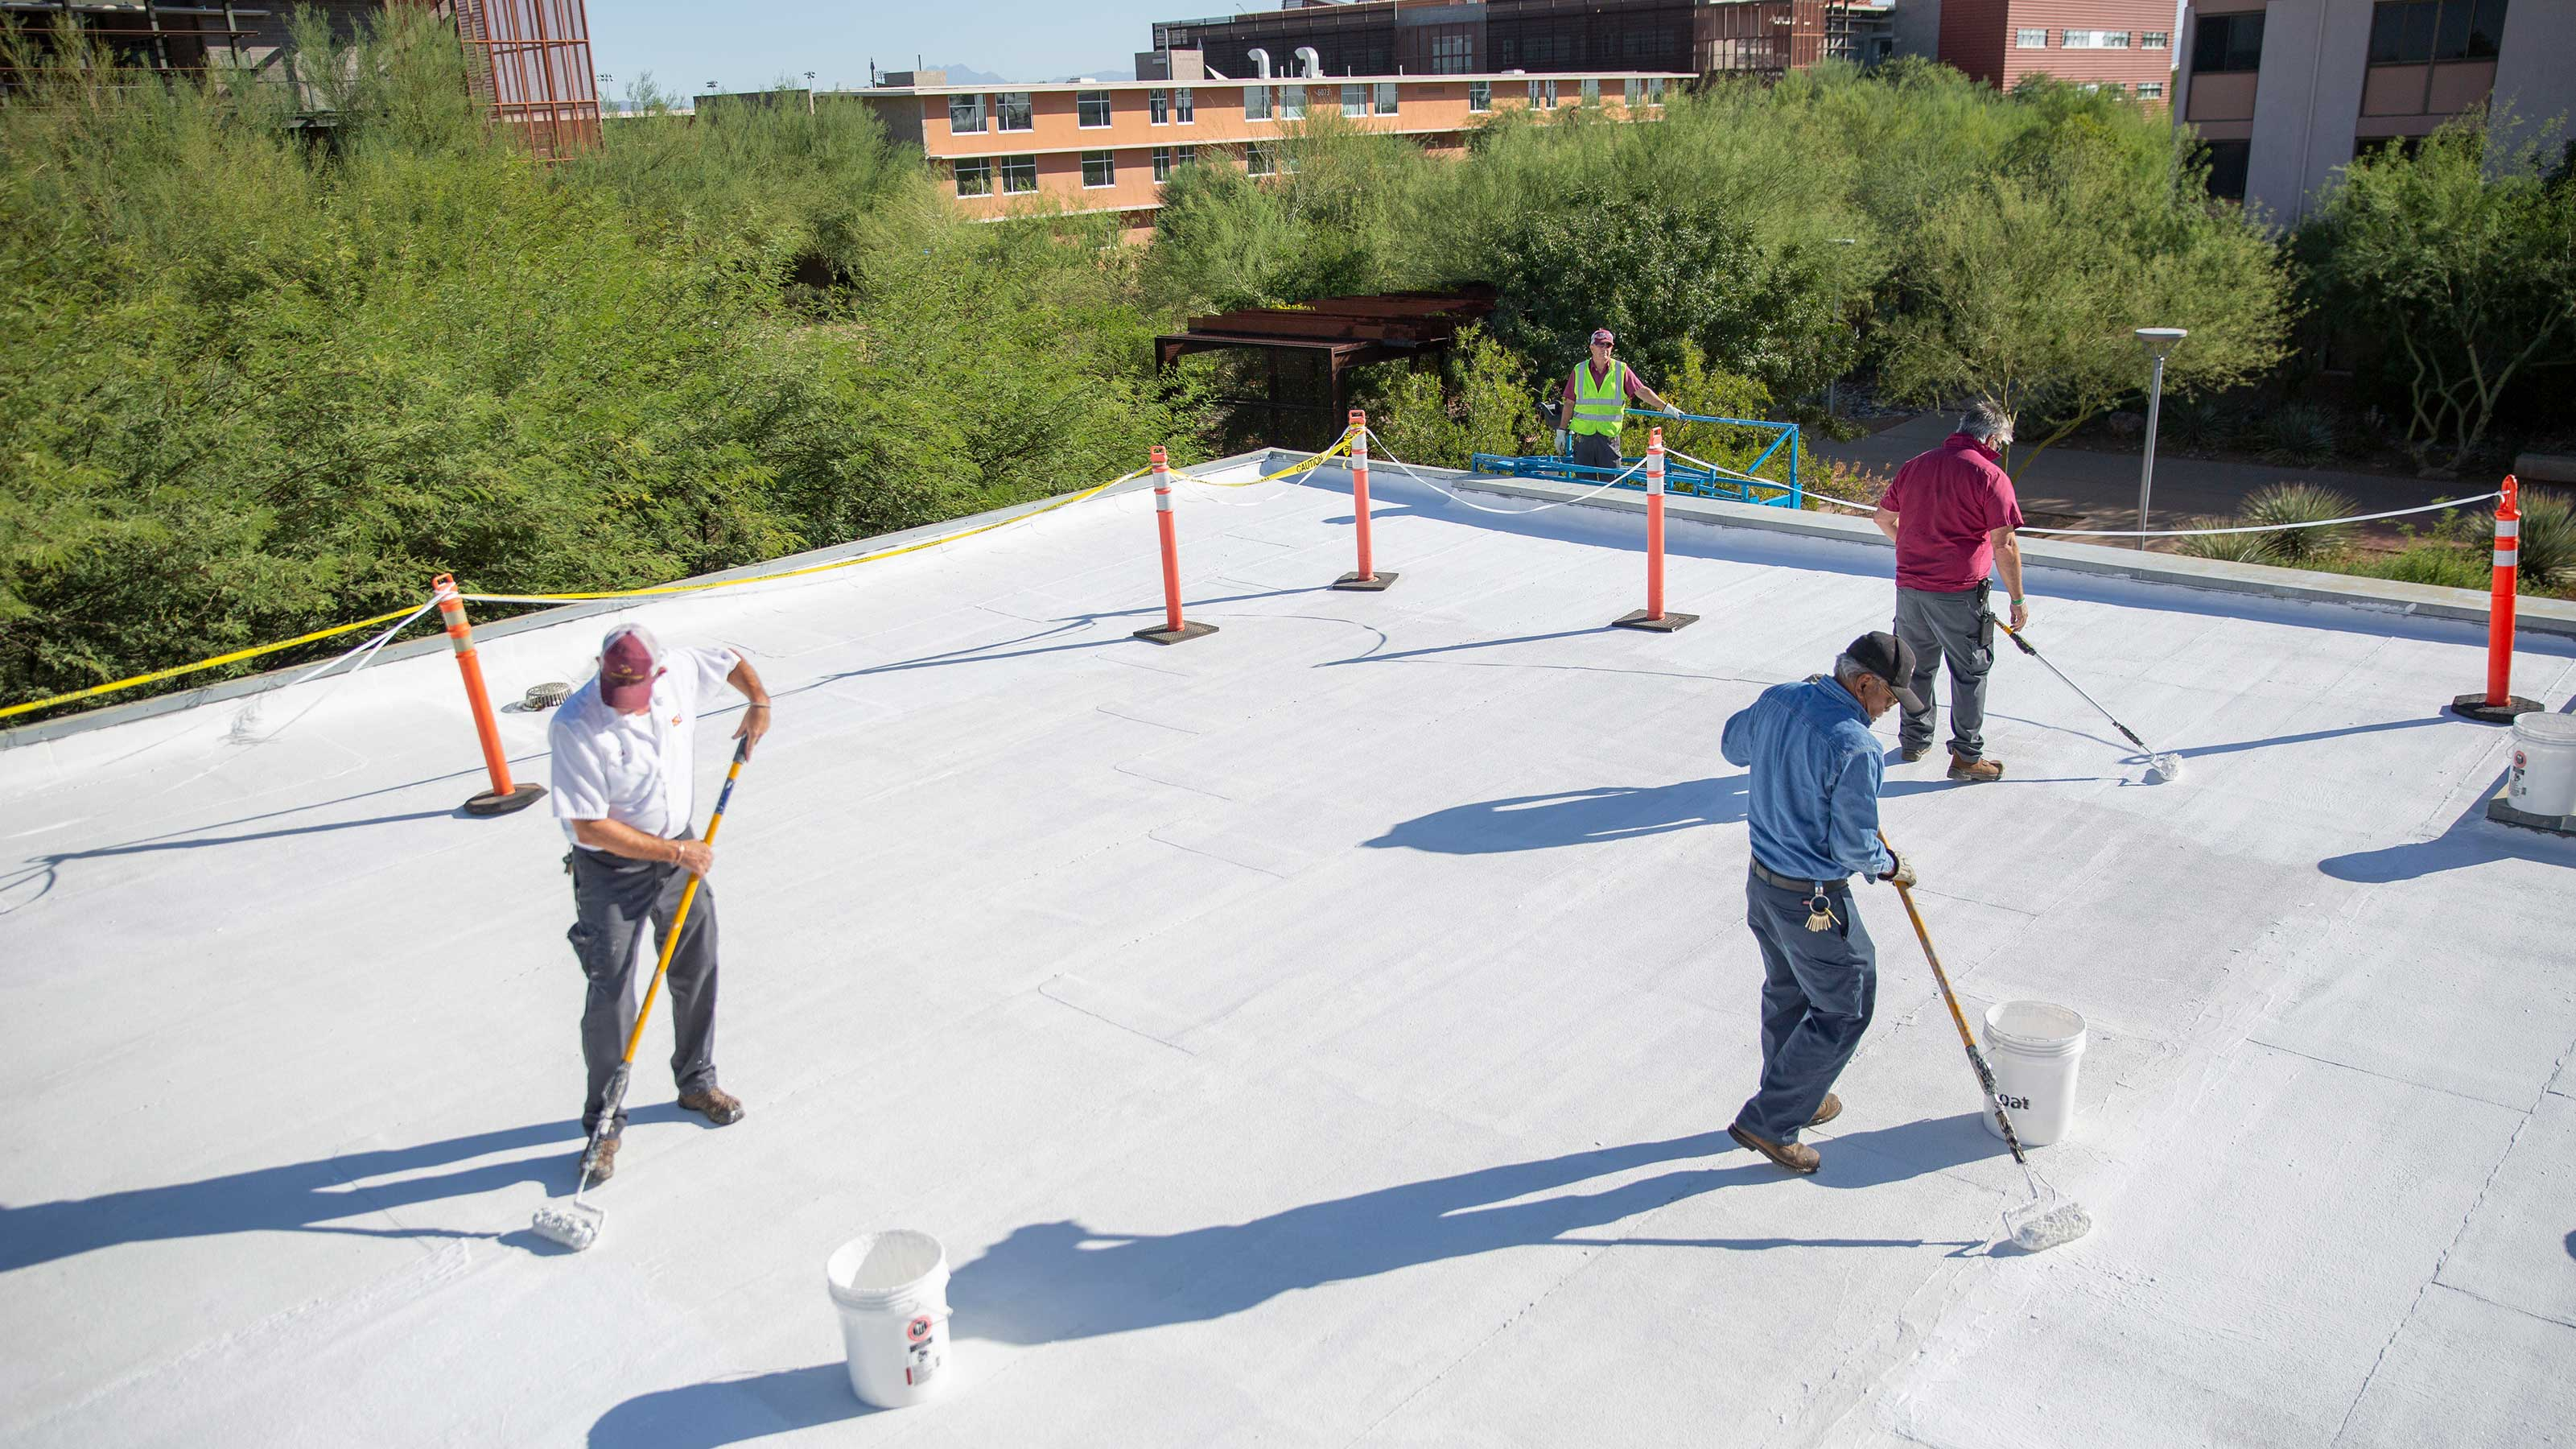 Workers on a flat building roof are rolling a bright white material onto the roof